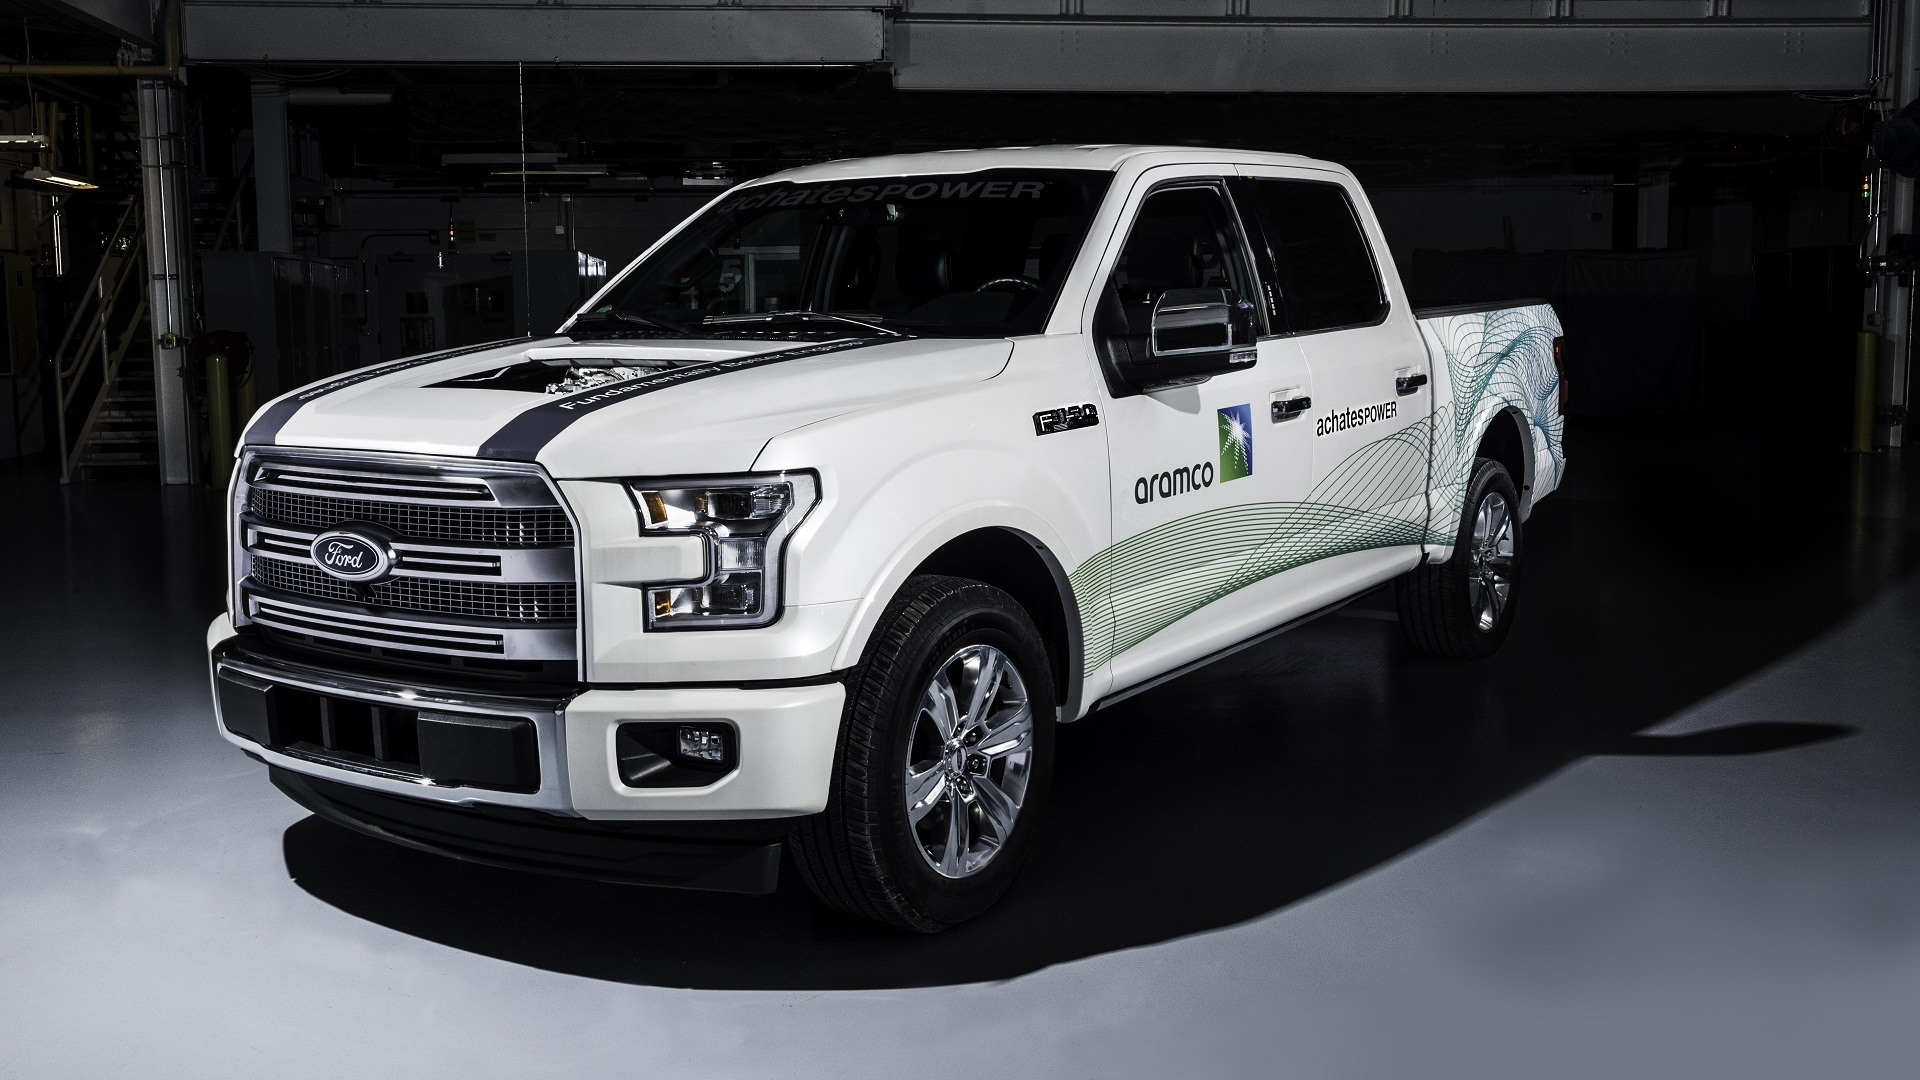 Achates 2.7-liter opposed-piston gasoline compression-igntion engine in Ford F-150 test pickup truck